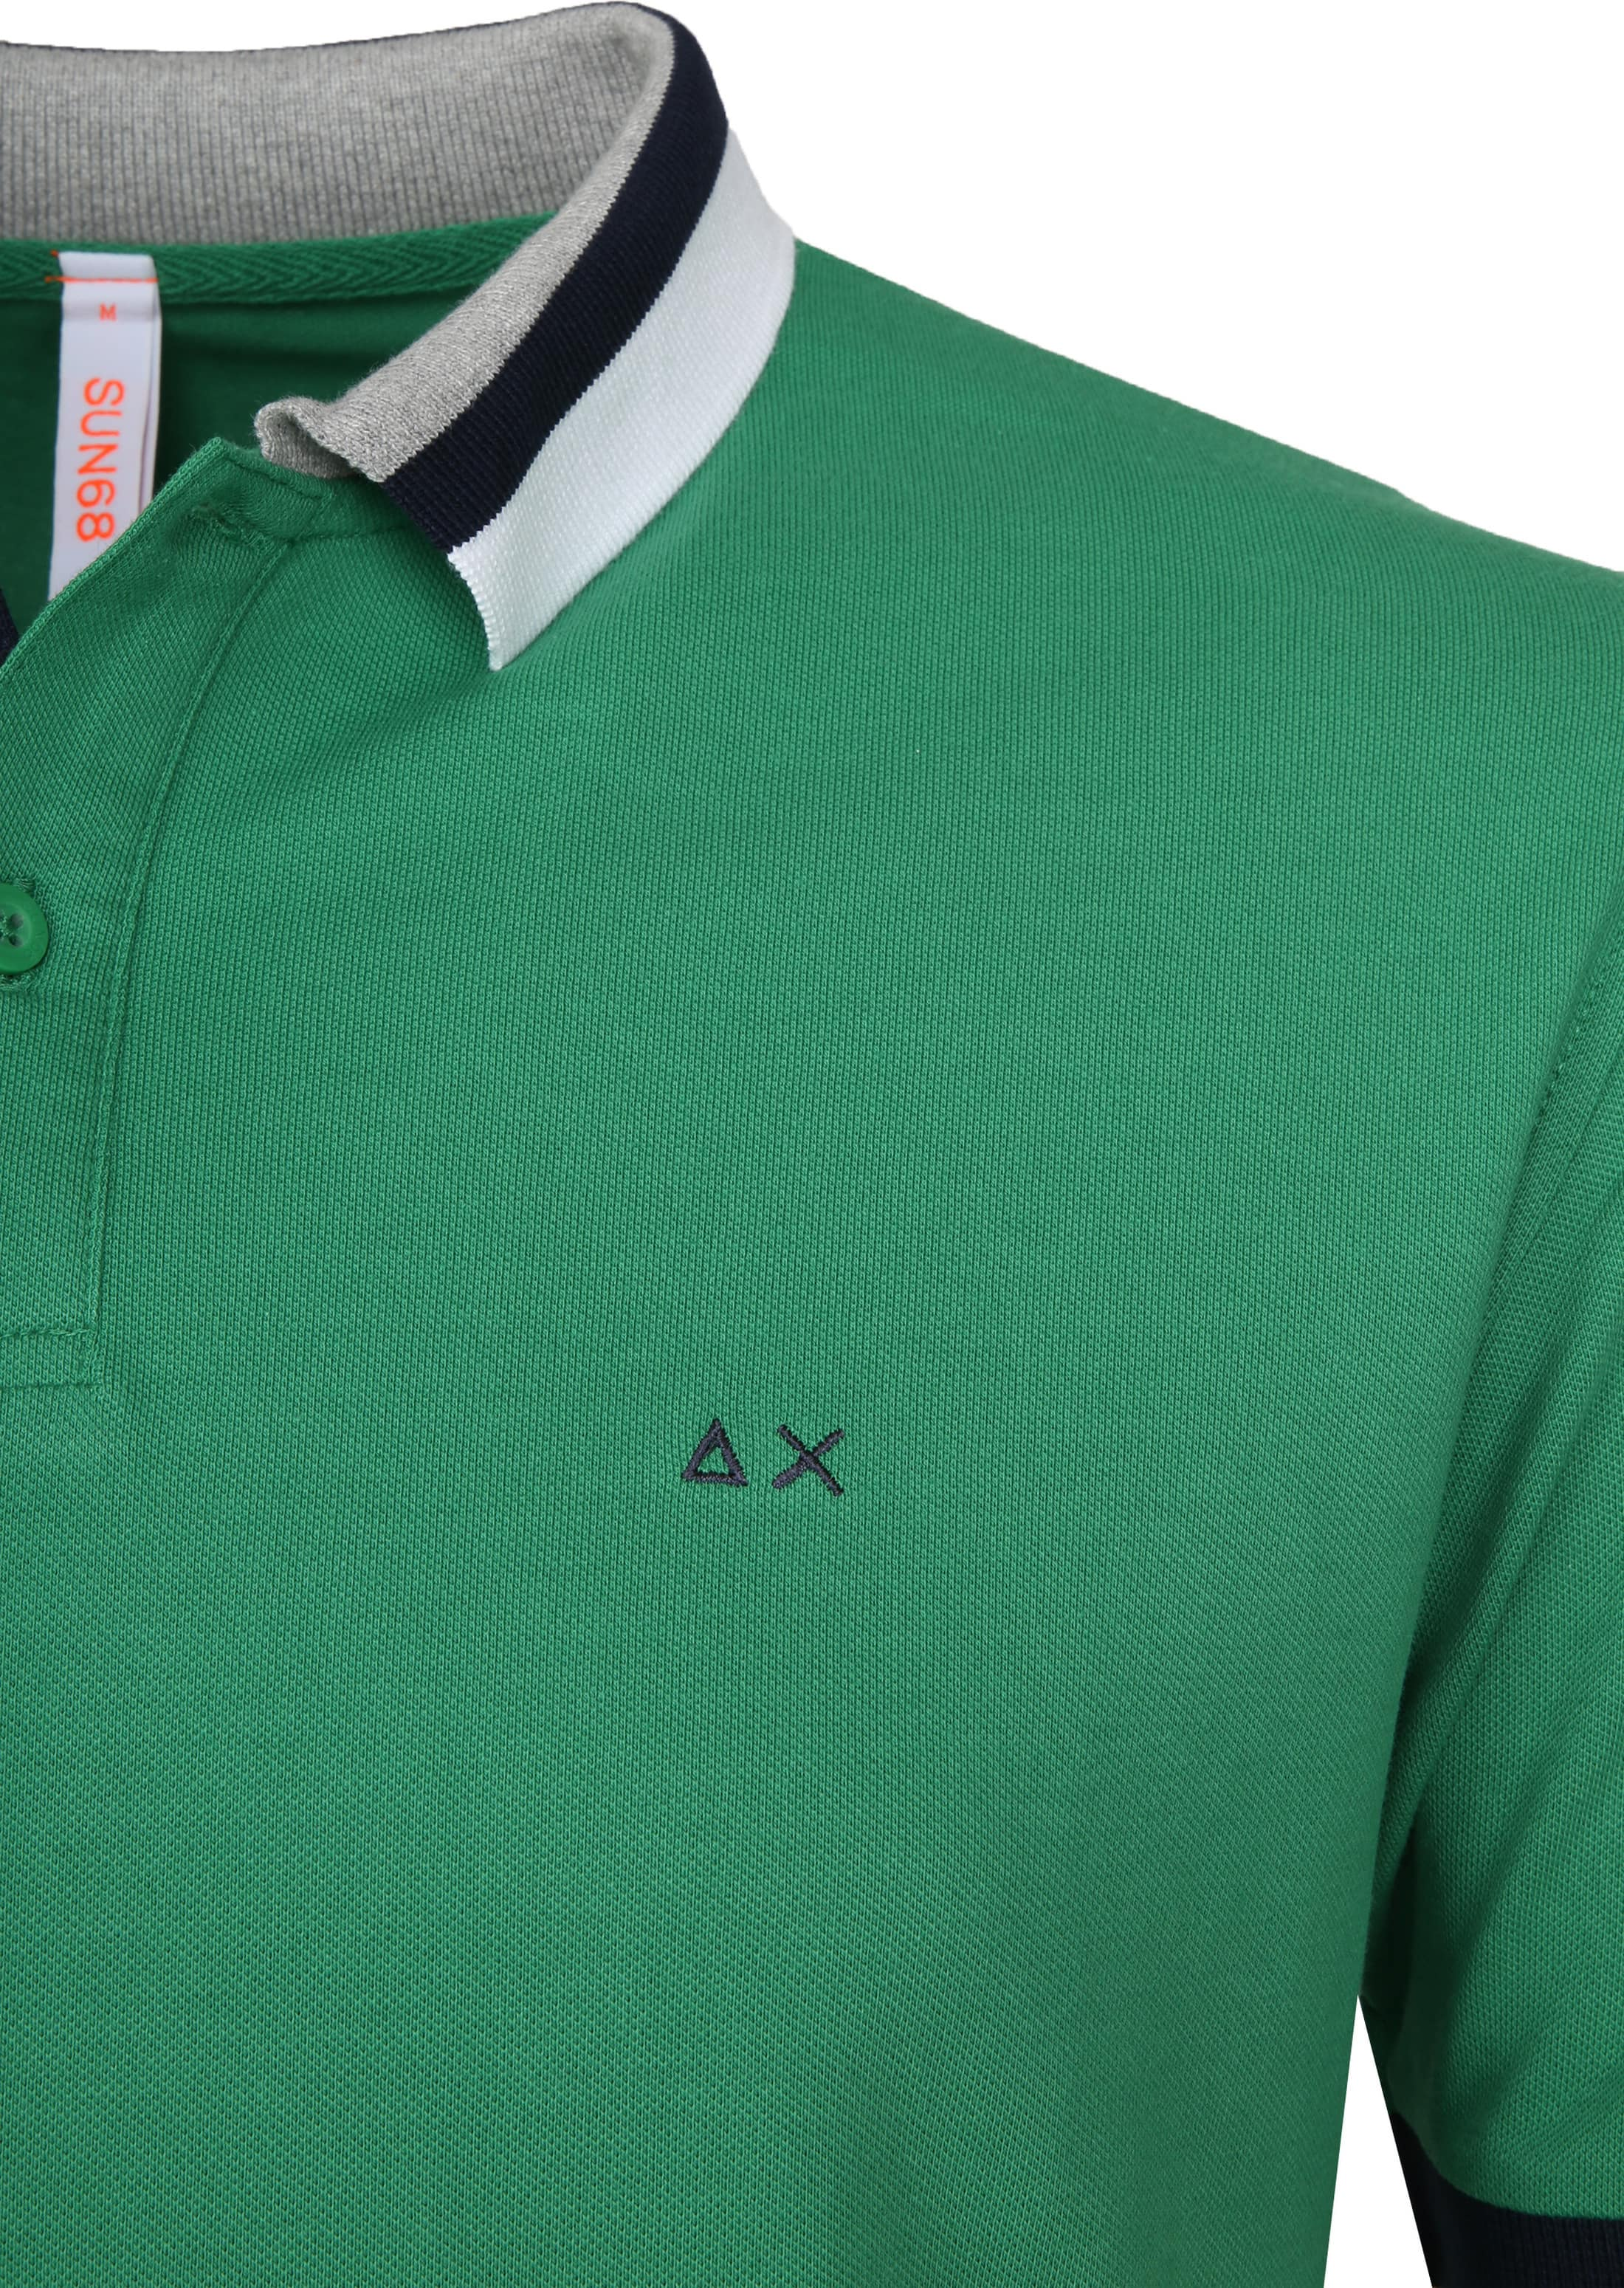 Sun68 Polo Three Collar Green foto 1